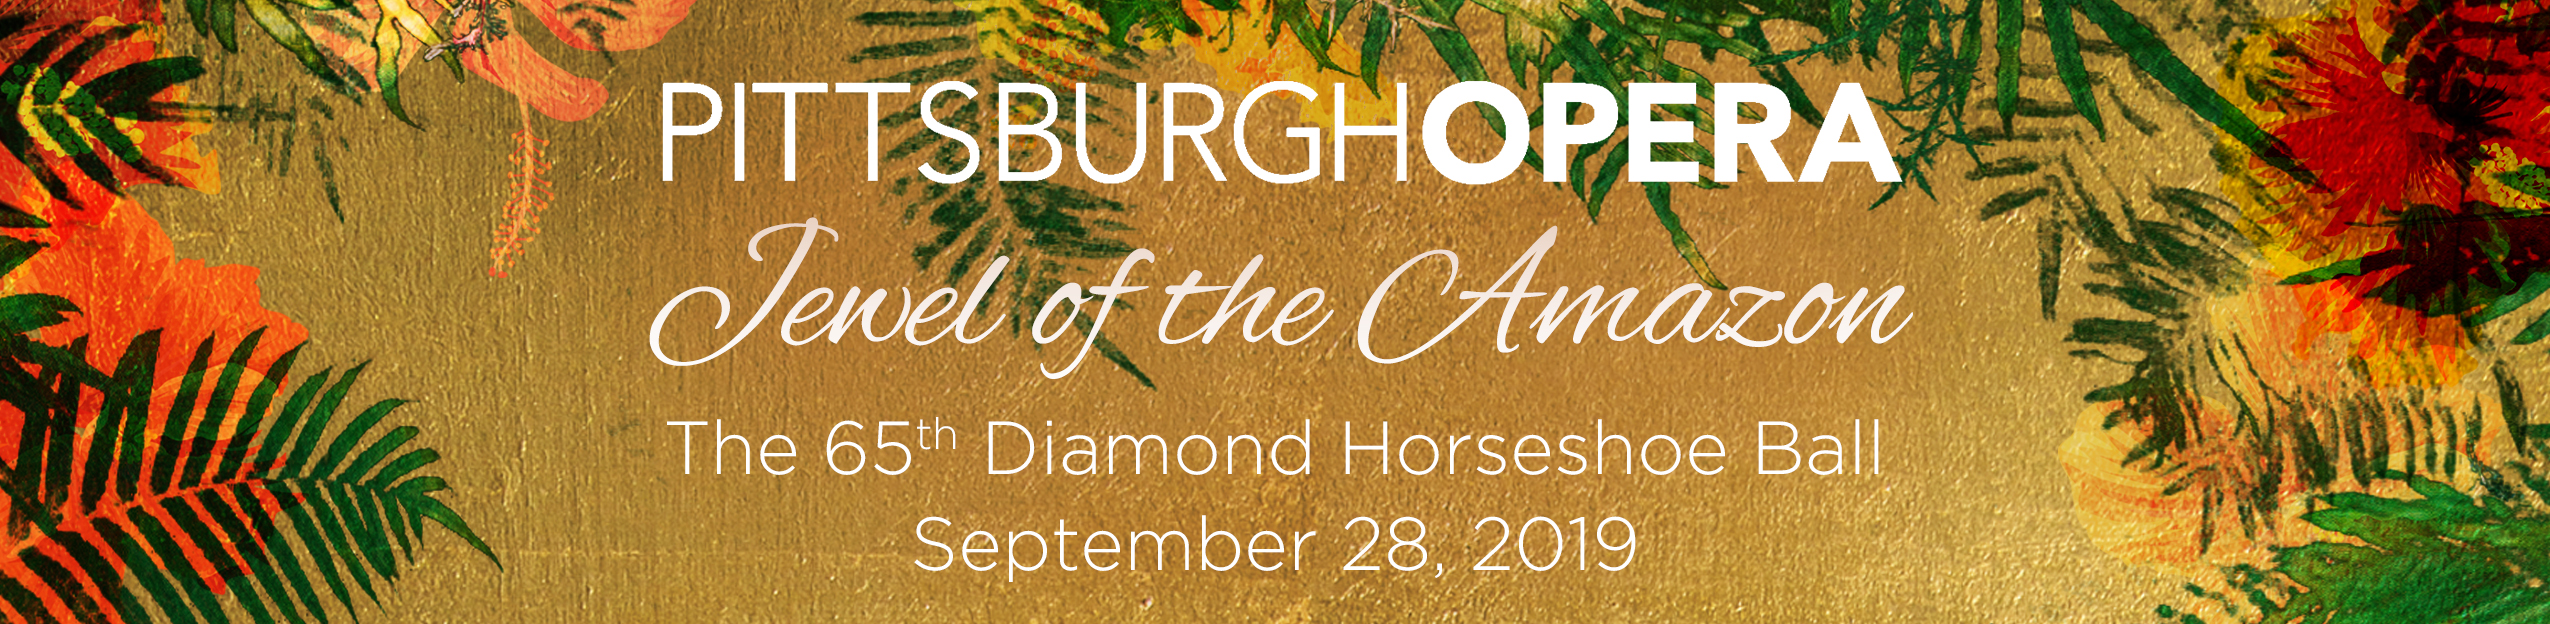 Jewel of the Amazon: The 65th Annual Diamond Horseshoe Ball